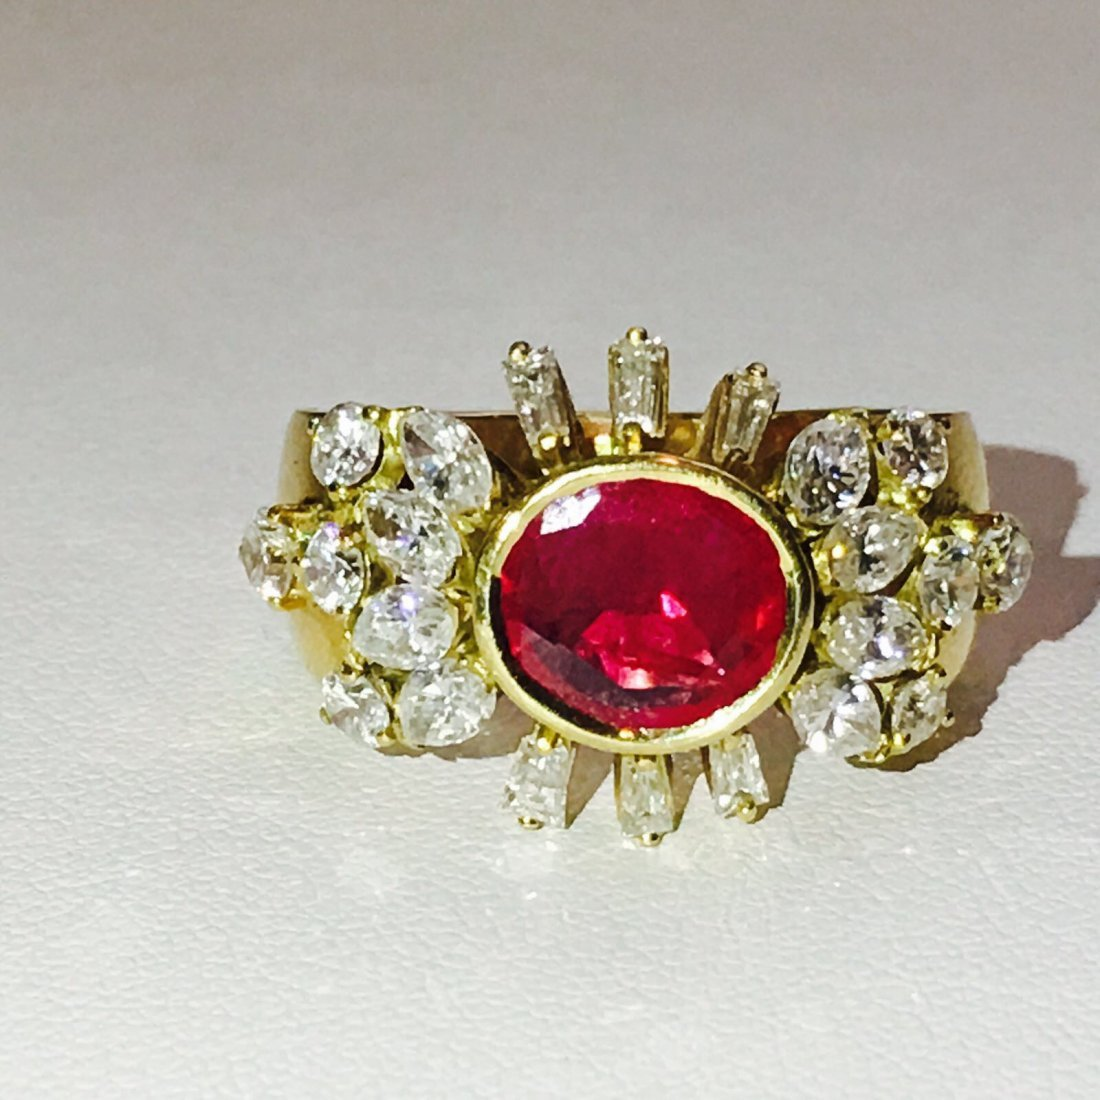 VINTAGE 4 CT NO HEAT Burma Ruby & VVS DIAMONDS (GIA)